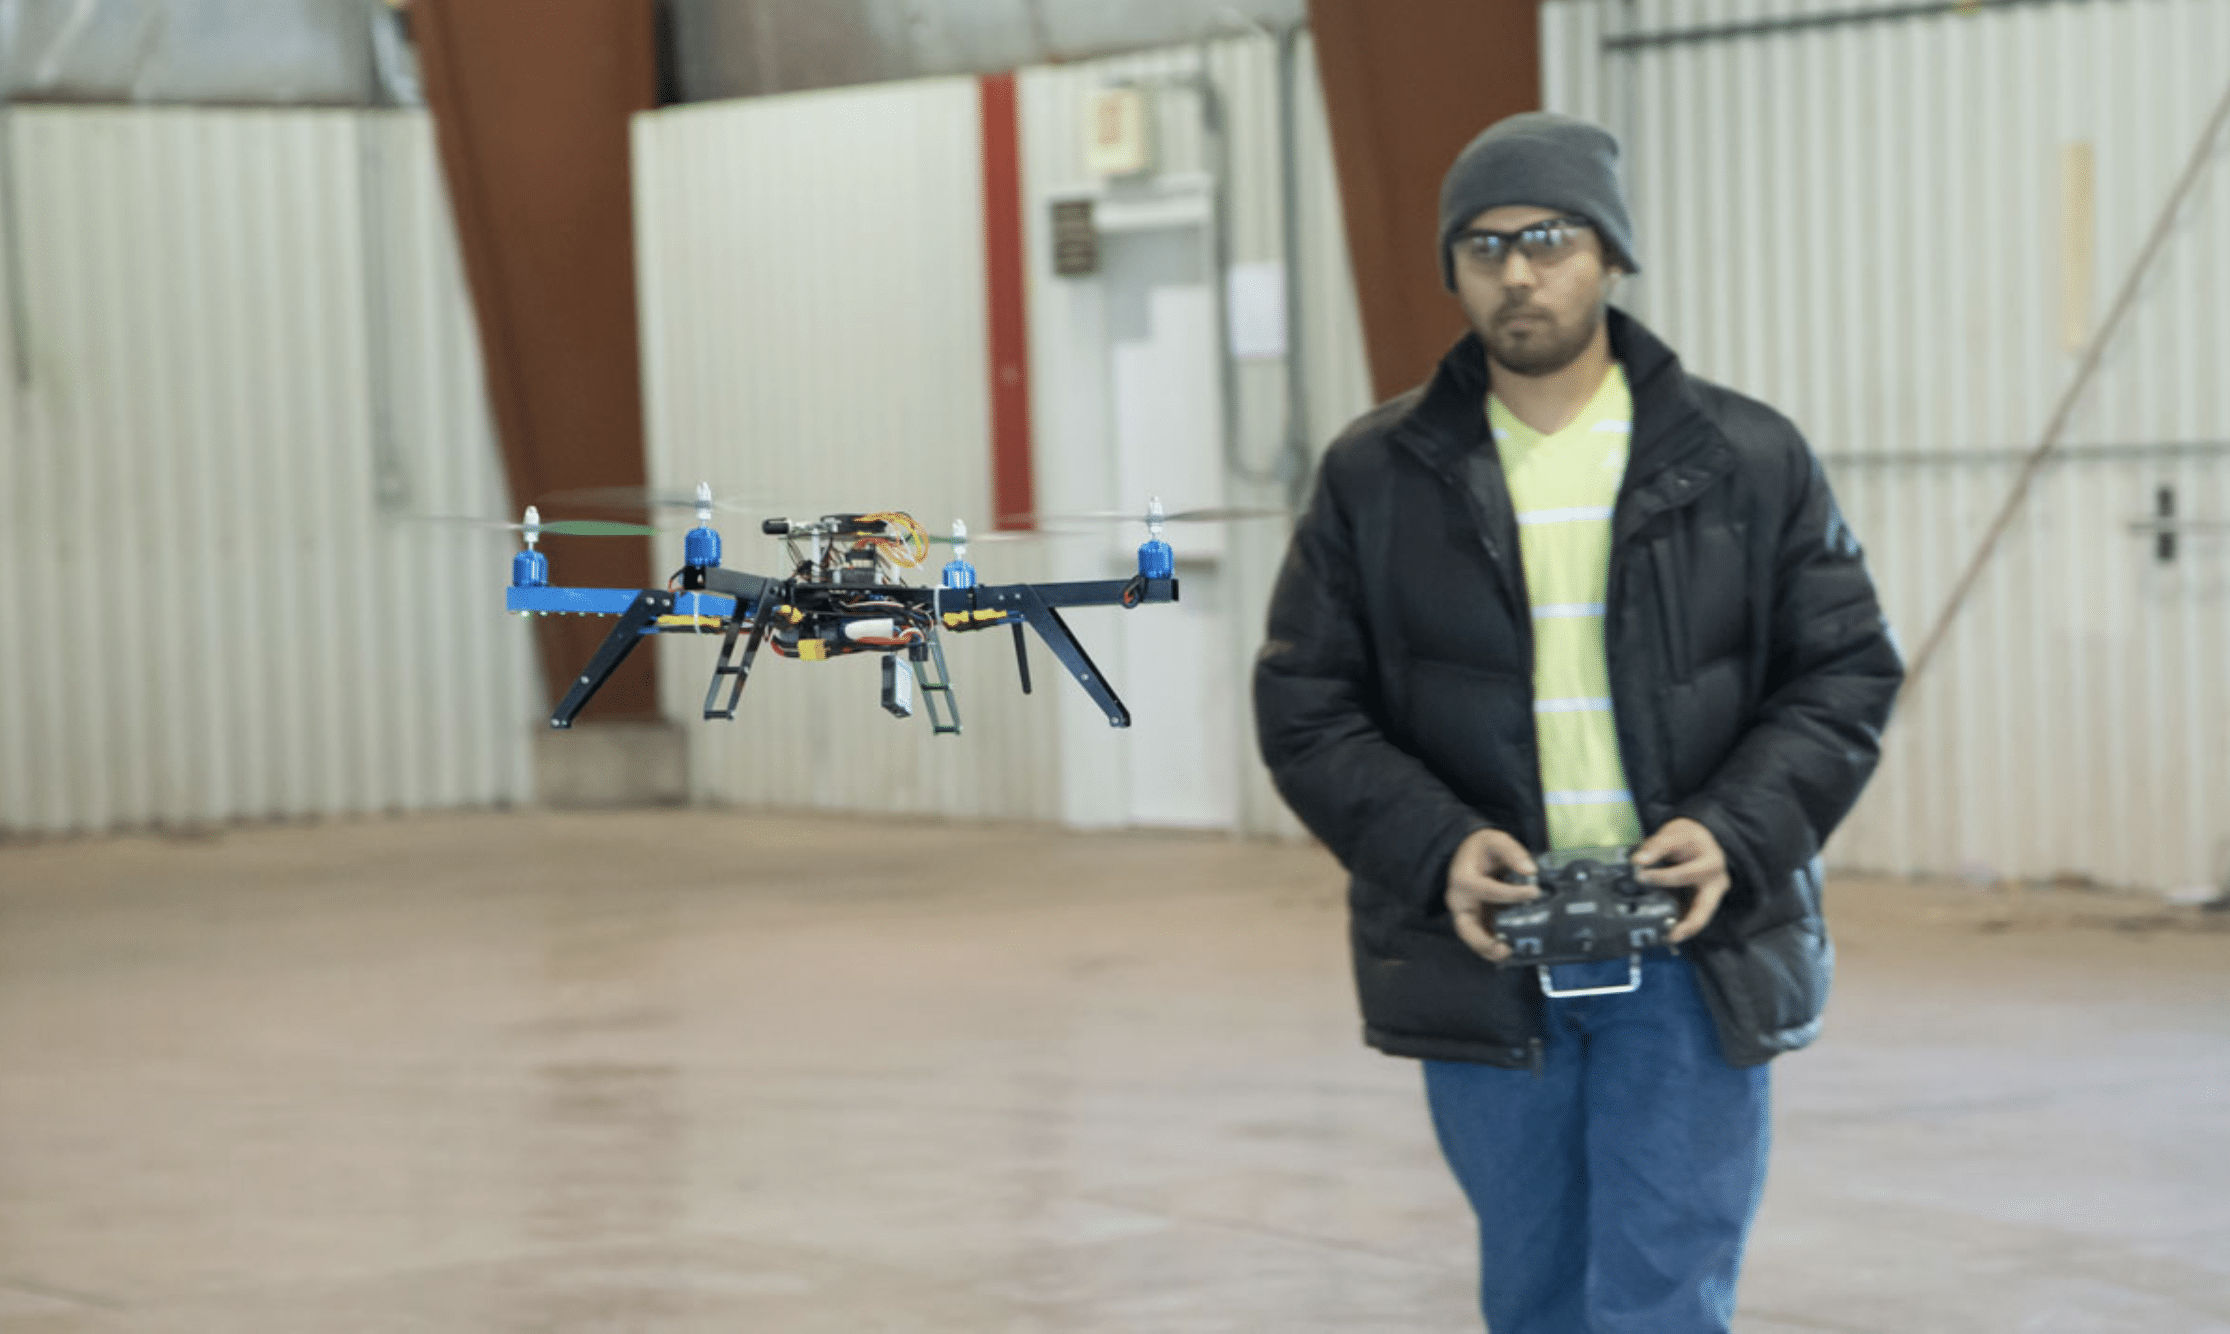 Man flying drone in building